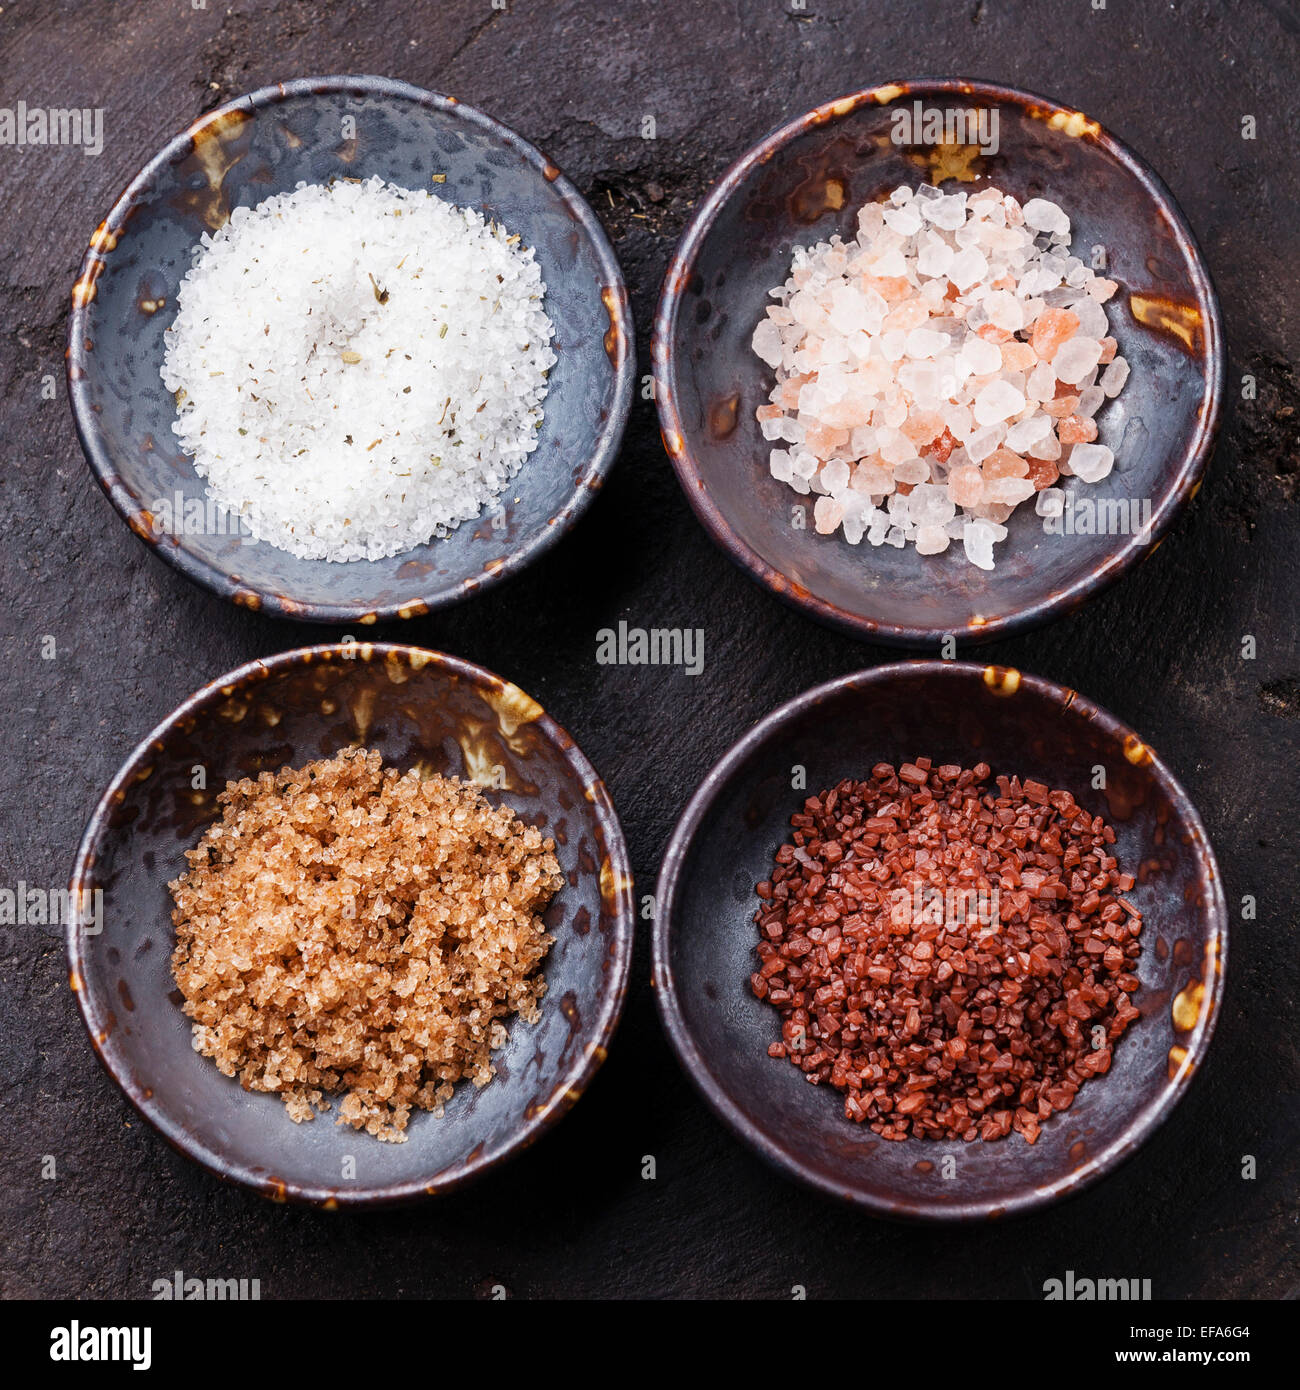 Different types of food coarse Salt in ceramic bowls on dark background - Stock Image